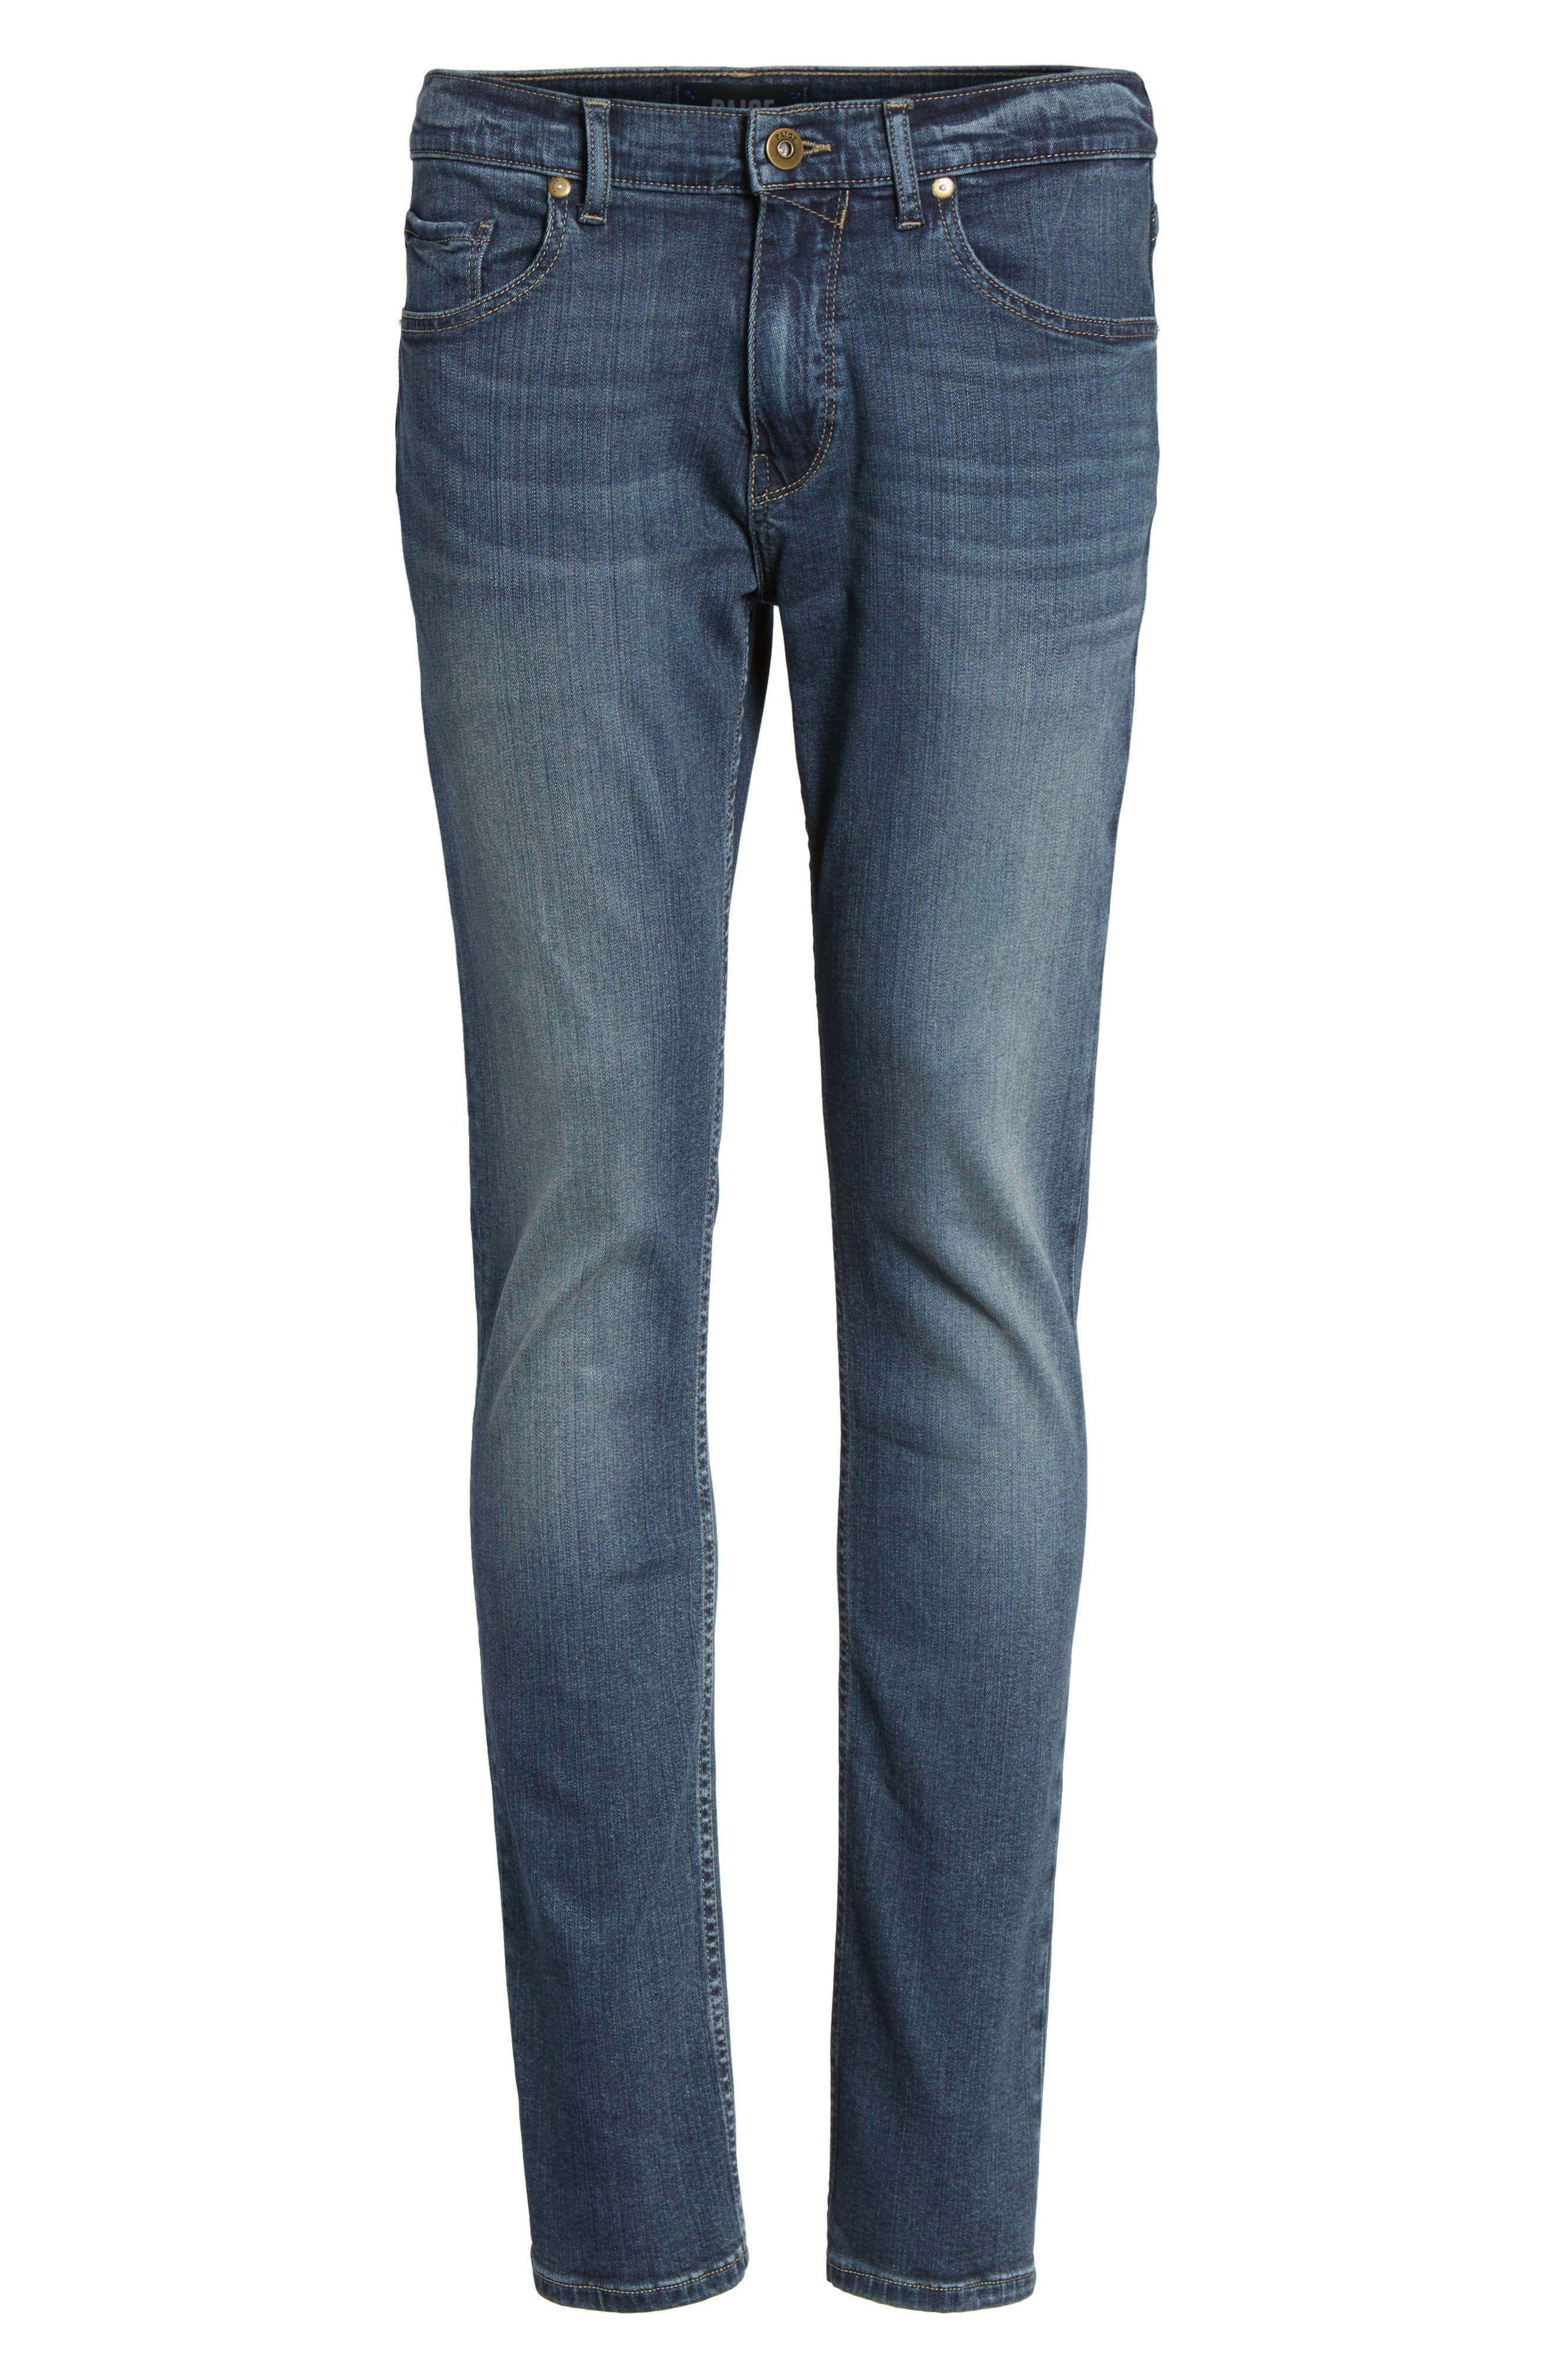 Transcend - Federal Slim Straight Leg Jeans,                             Alternate thumbnail 6, color,                             Briggs